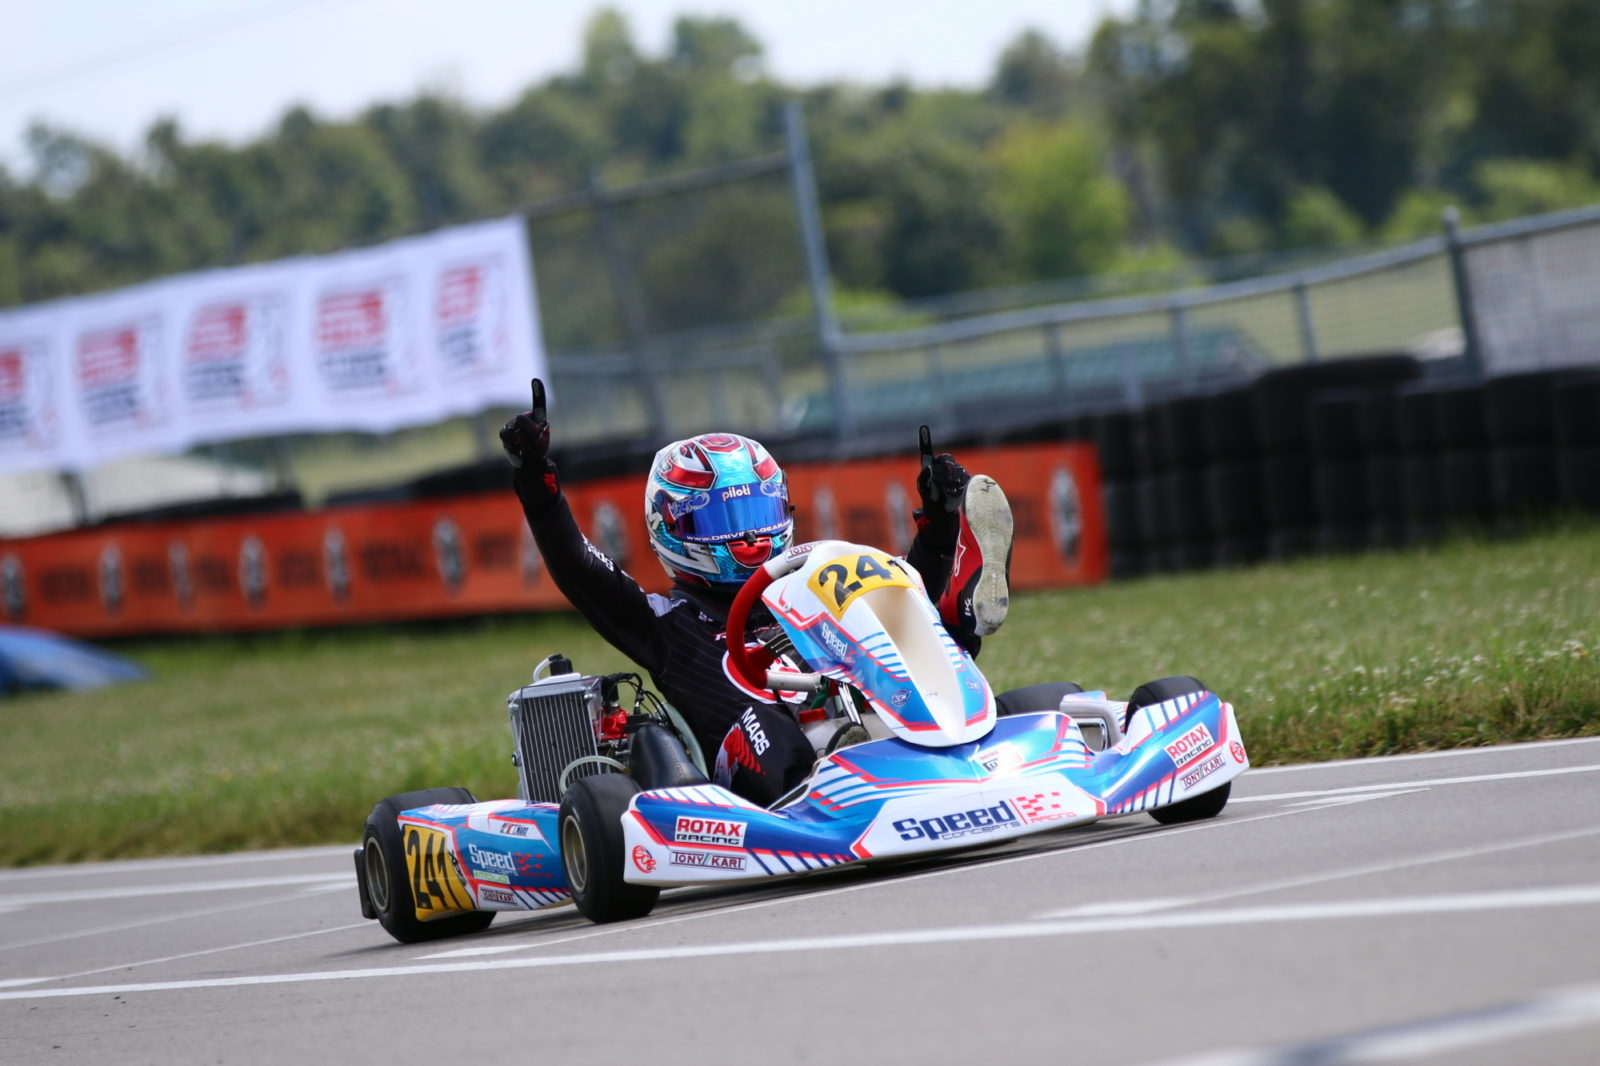 Luca Mars celebrates across the finish line of the 2019 Stars and Stripes Open in Wampum, PA